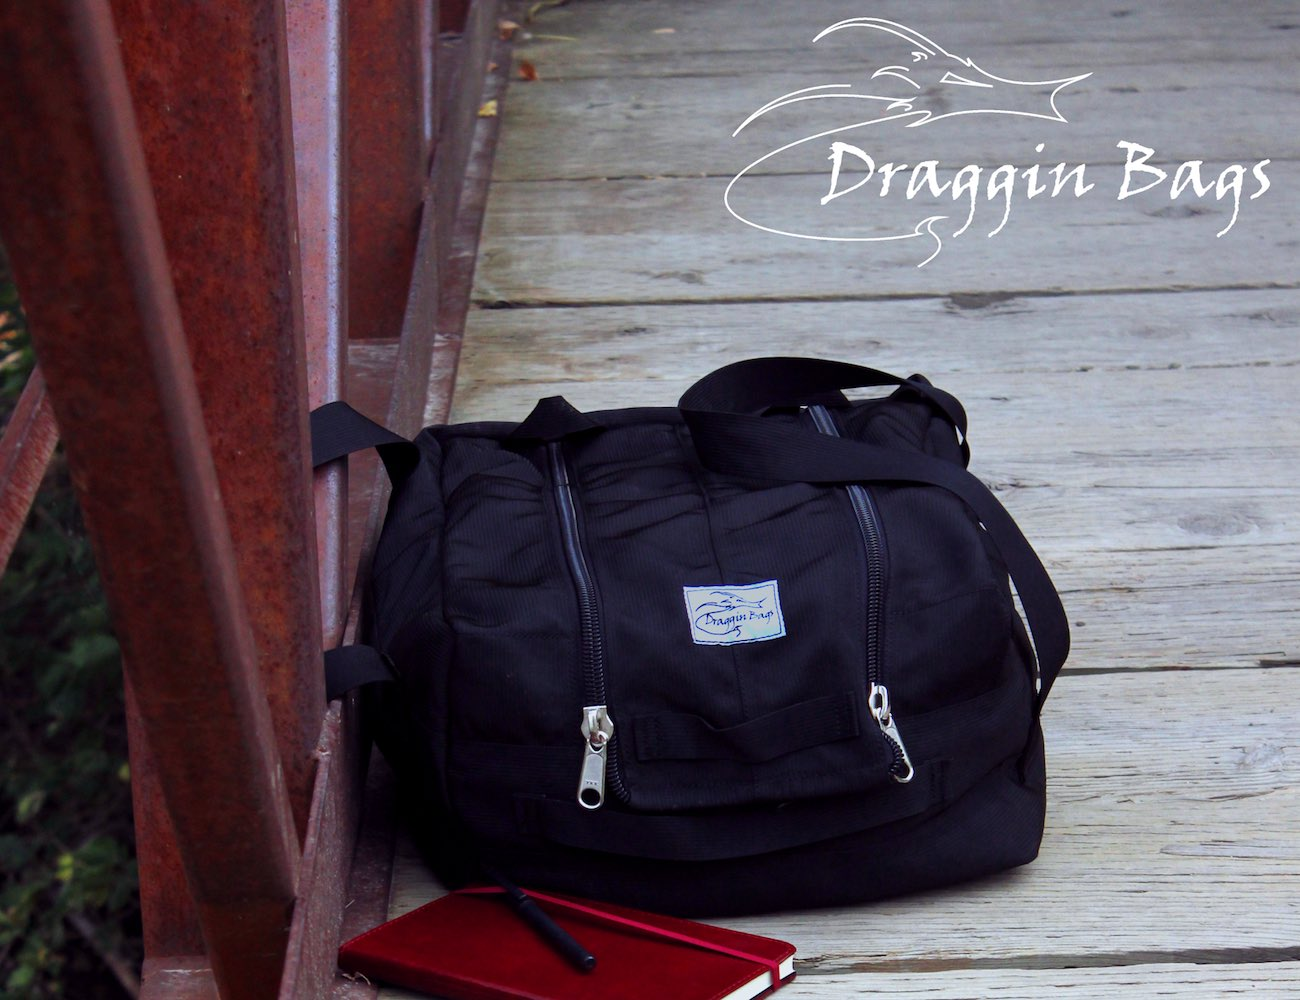 Worlds First and Only Webbing Duffel Bag